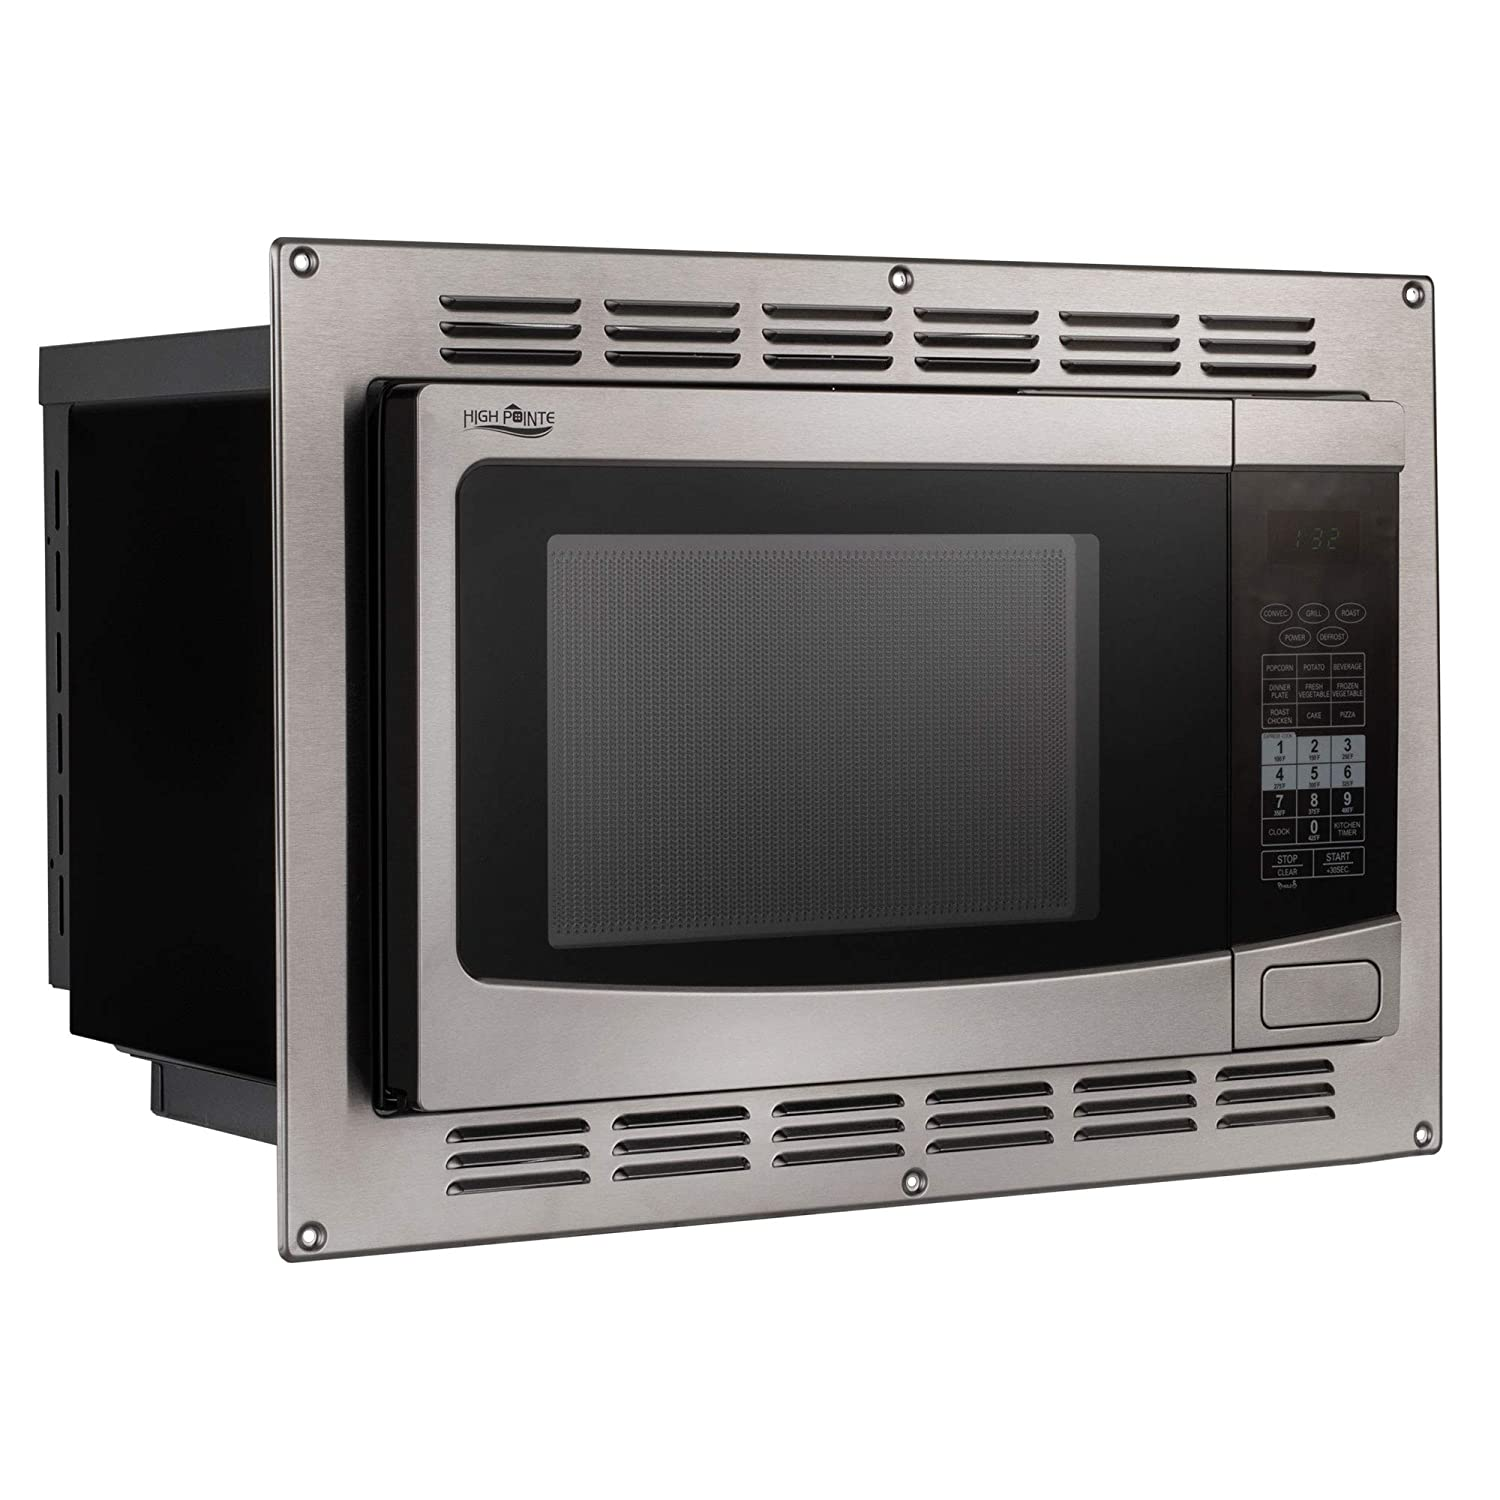 RecPro RV Convection Microwave Stainless Steel 1.1 cu. ft. | 120V | Microwave | Appliances